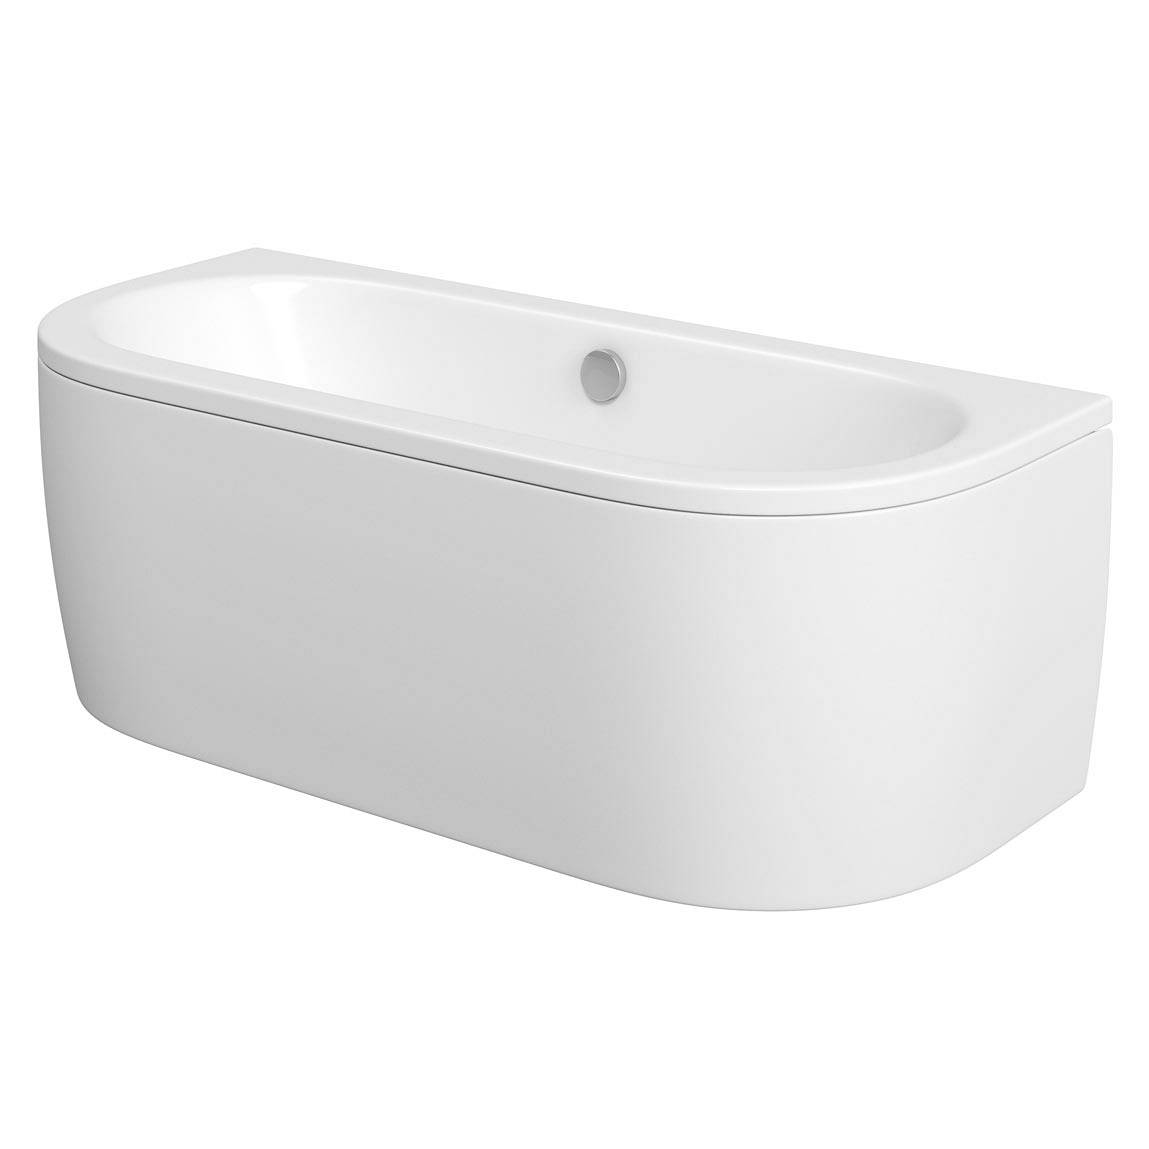 Image of Cayman D Shaped Doubled Ended Back To Wall Bath